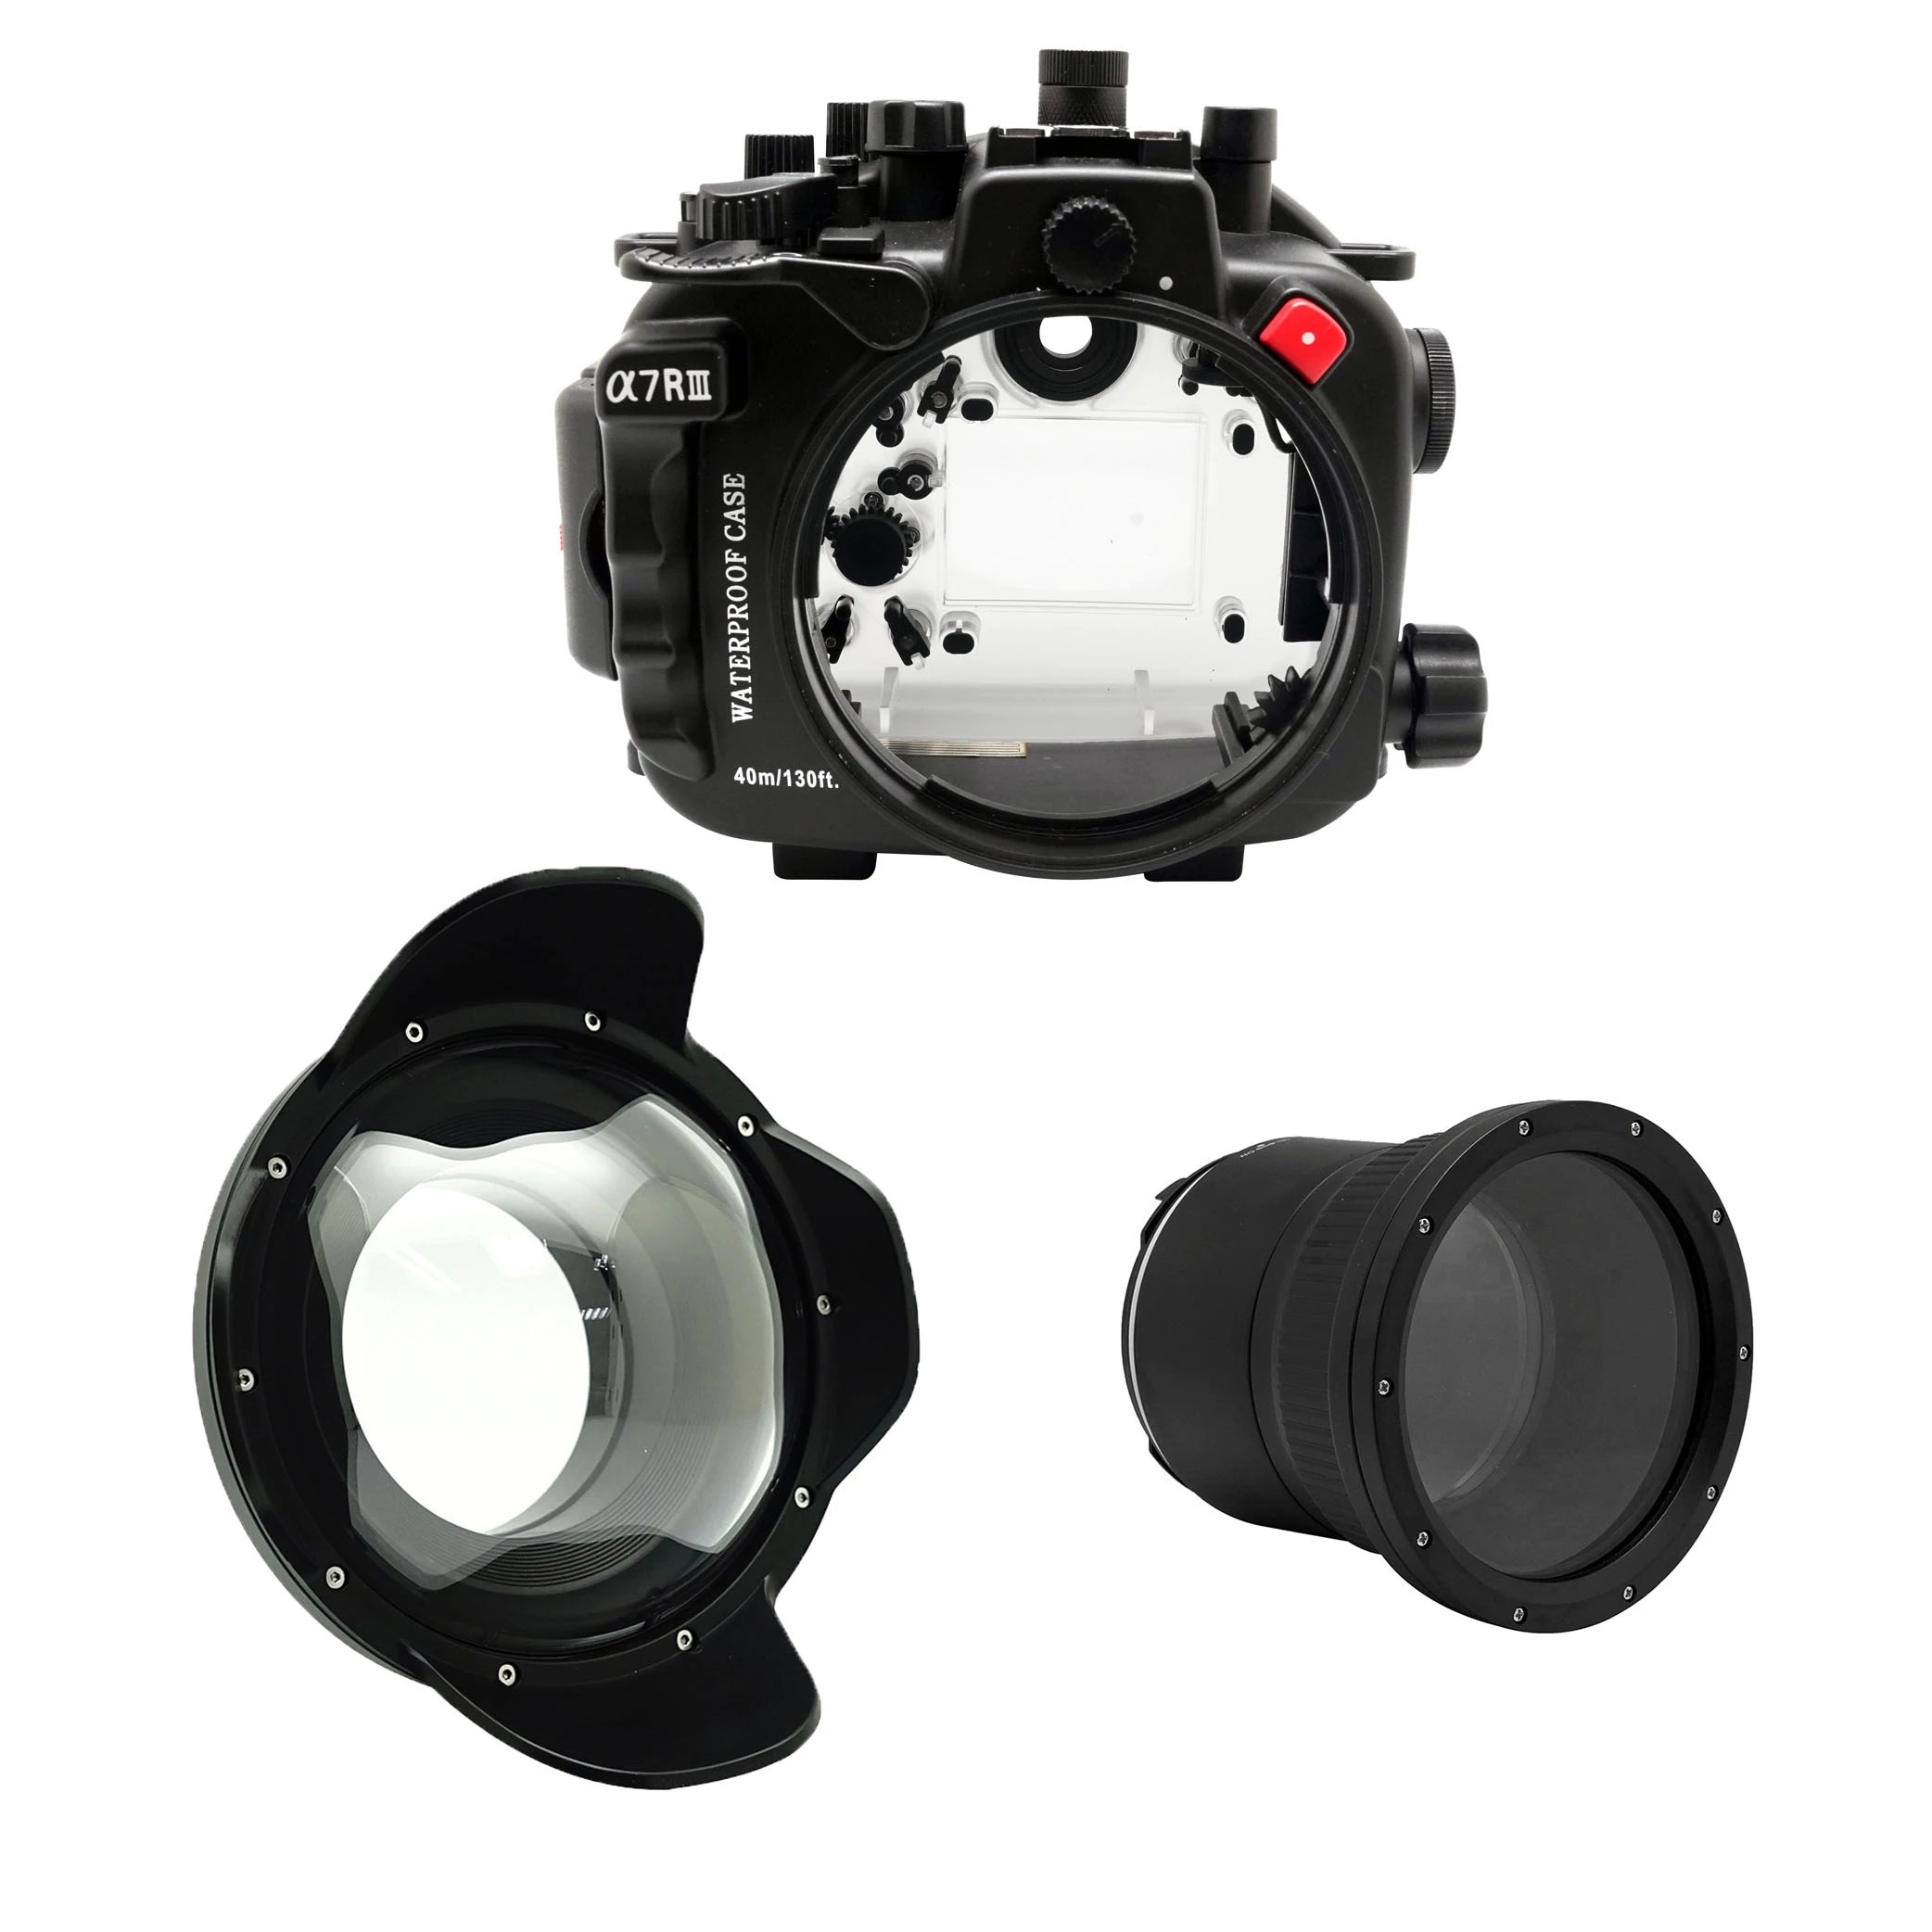 Seafrogs 40m 130ft Underwater Camera Housing Case for Sony A7III A7 III A7M3 A7R III with 90mm f/2.8 Sigma 35mm f/1.4 image